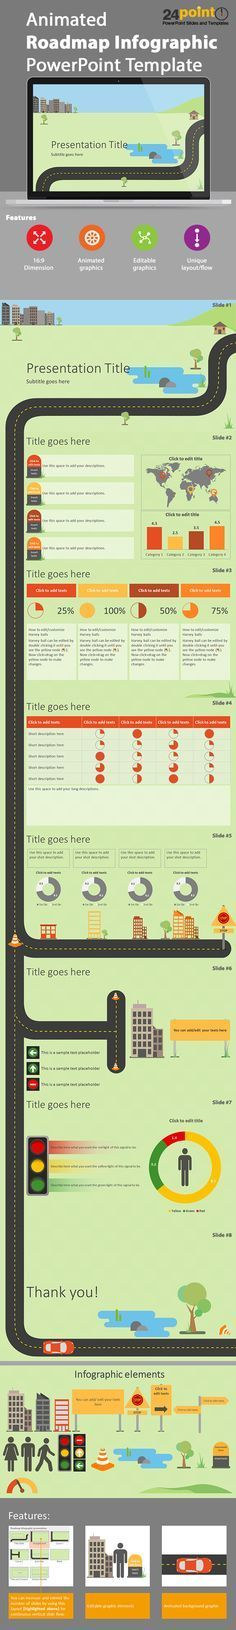 Animated Roadmap Infographic Powerpoint Template   PowerPoint Presentation Tools and Resources   Scoop.it